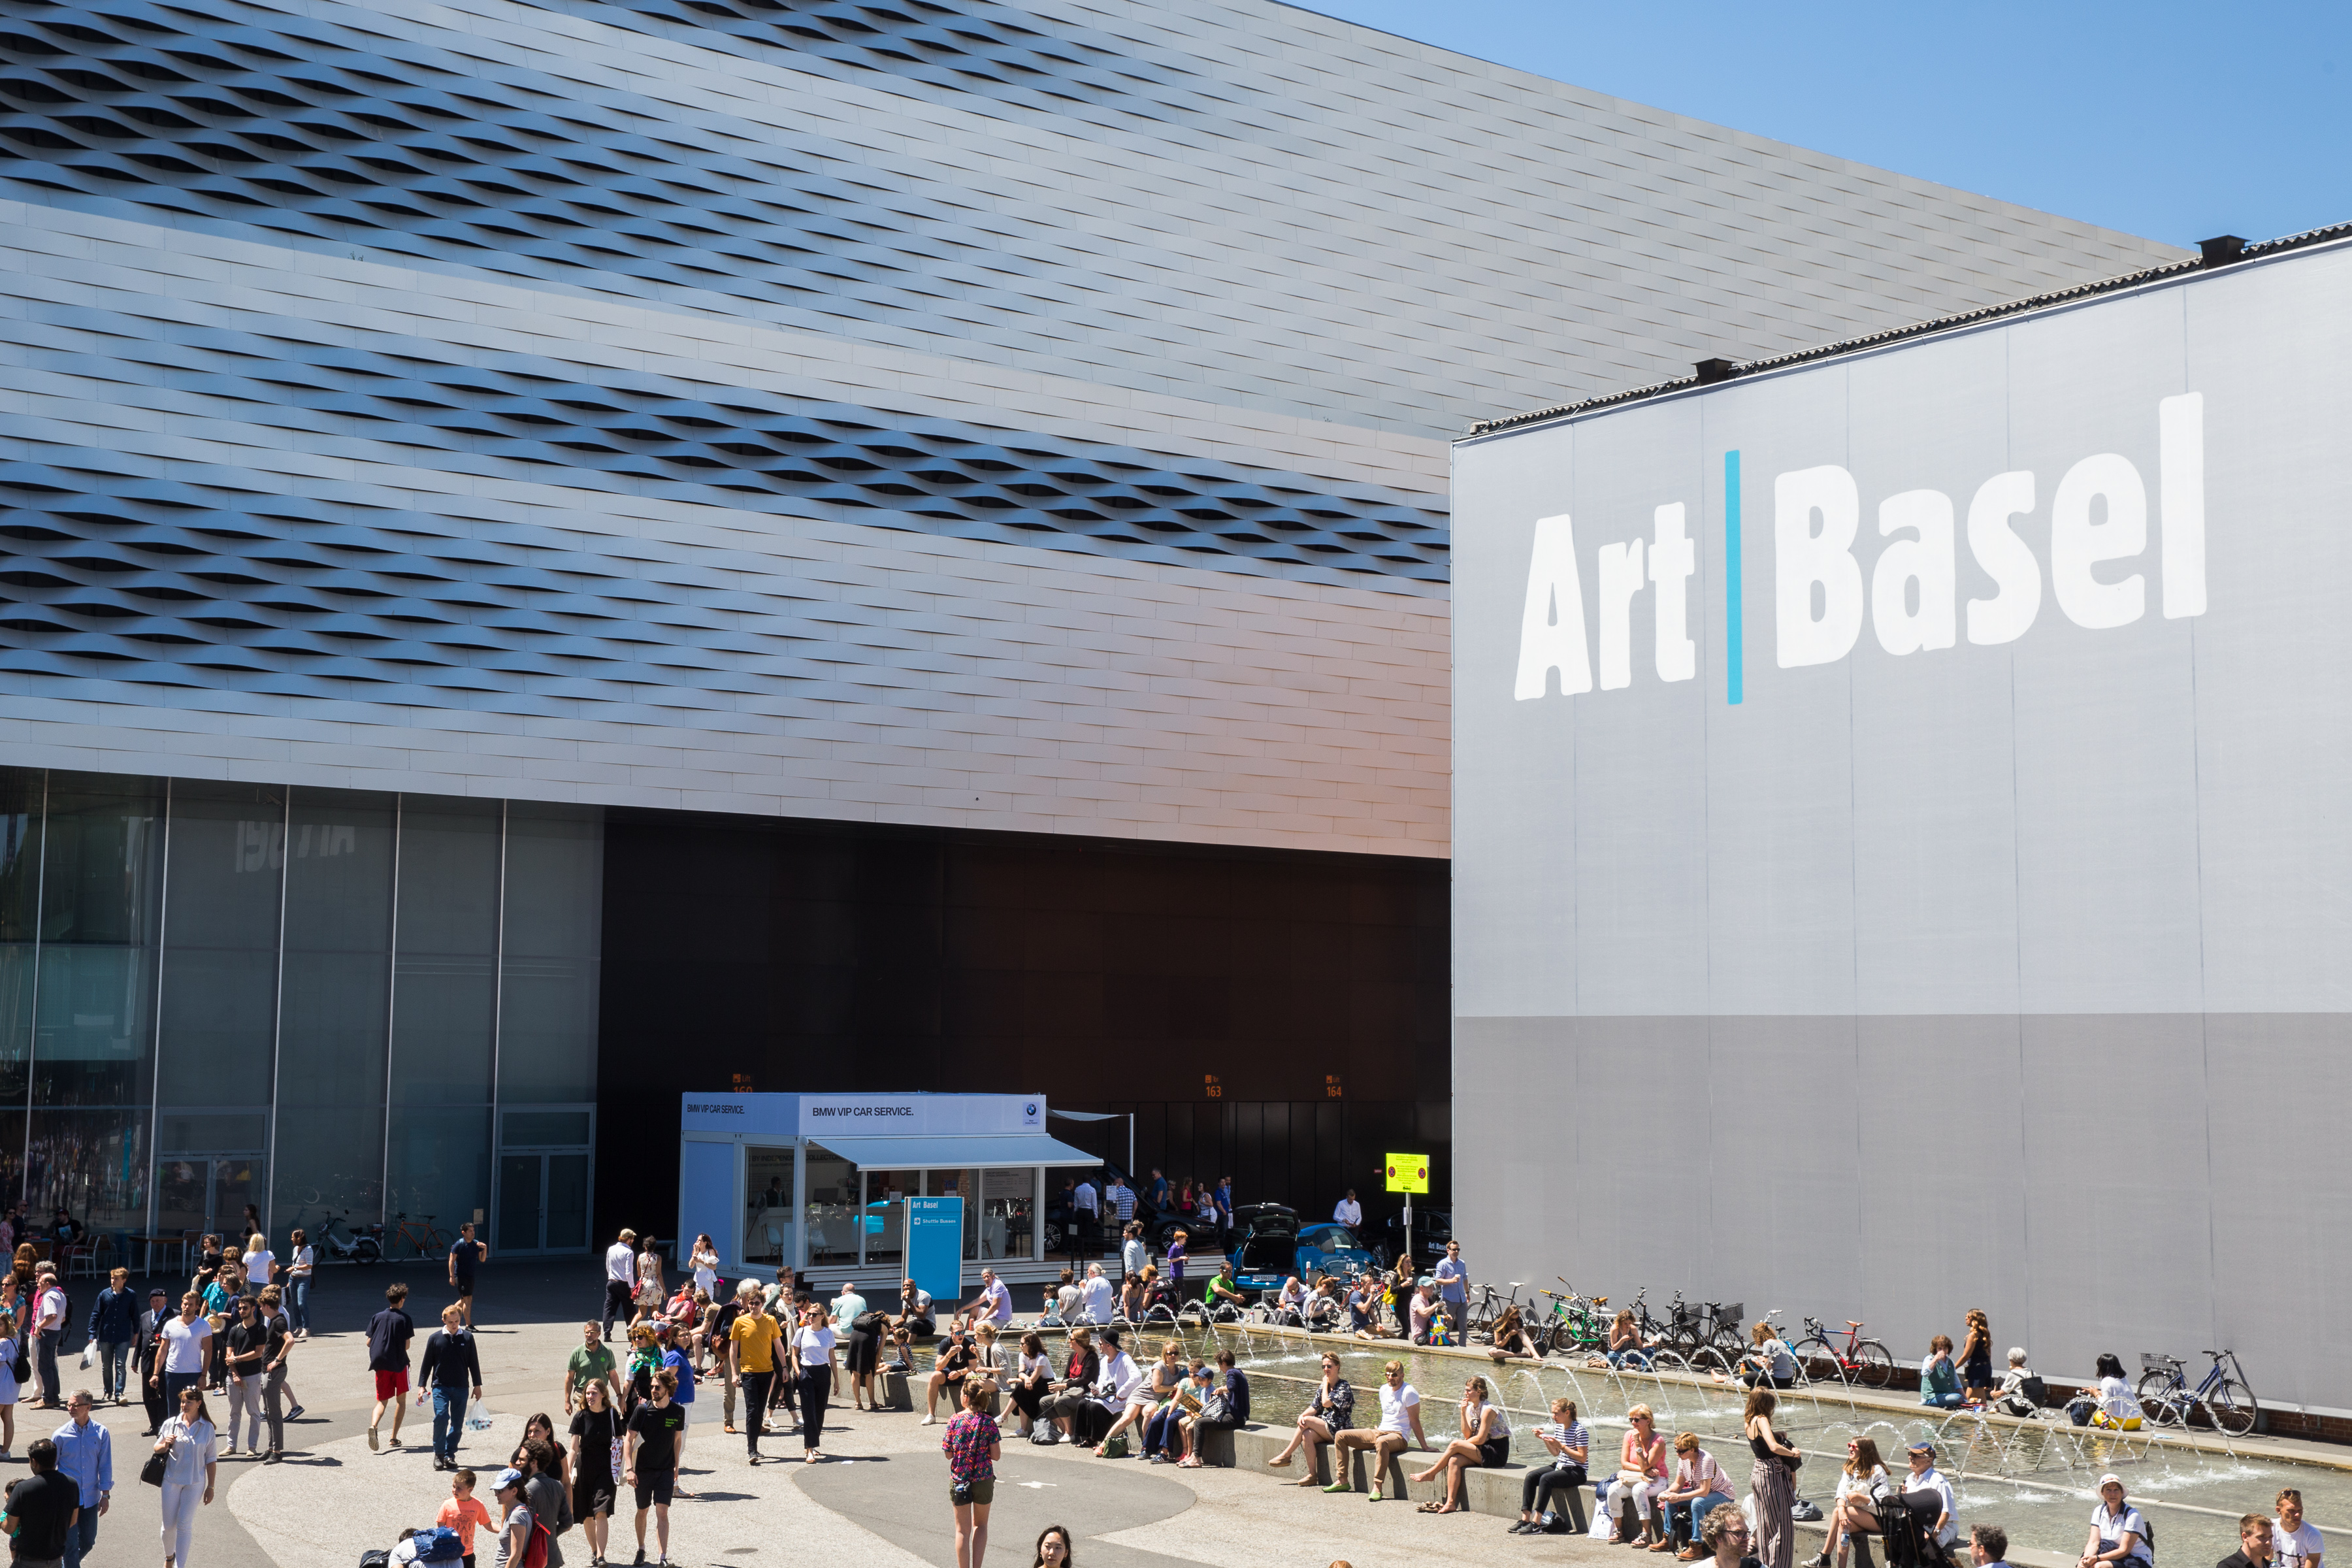 With 273 participating galleries from 33 countries, Art Basel will feature both physical, in-person viewings as well as online viewing rooms